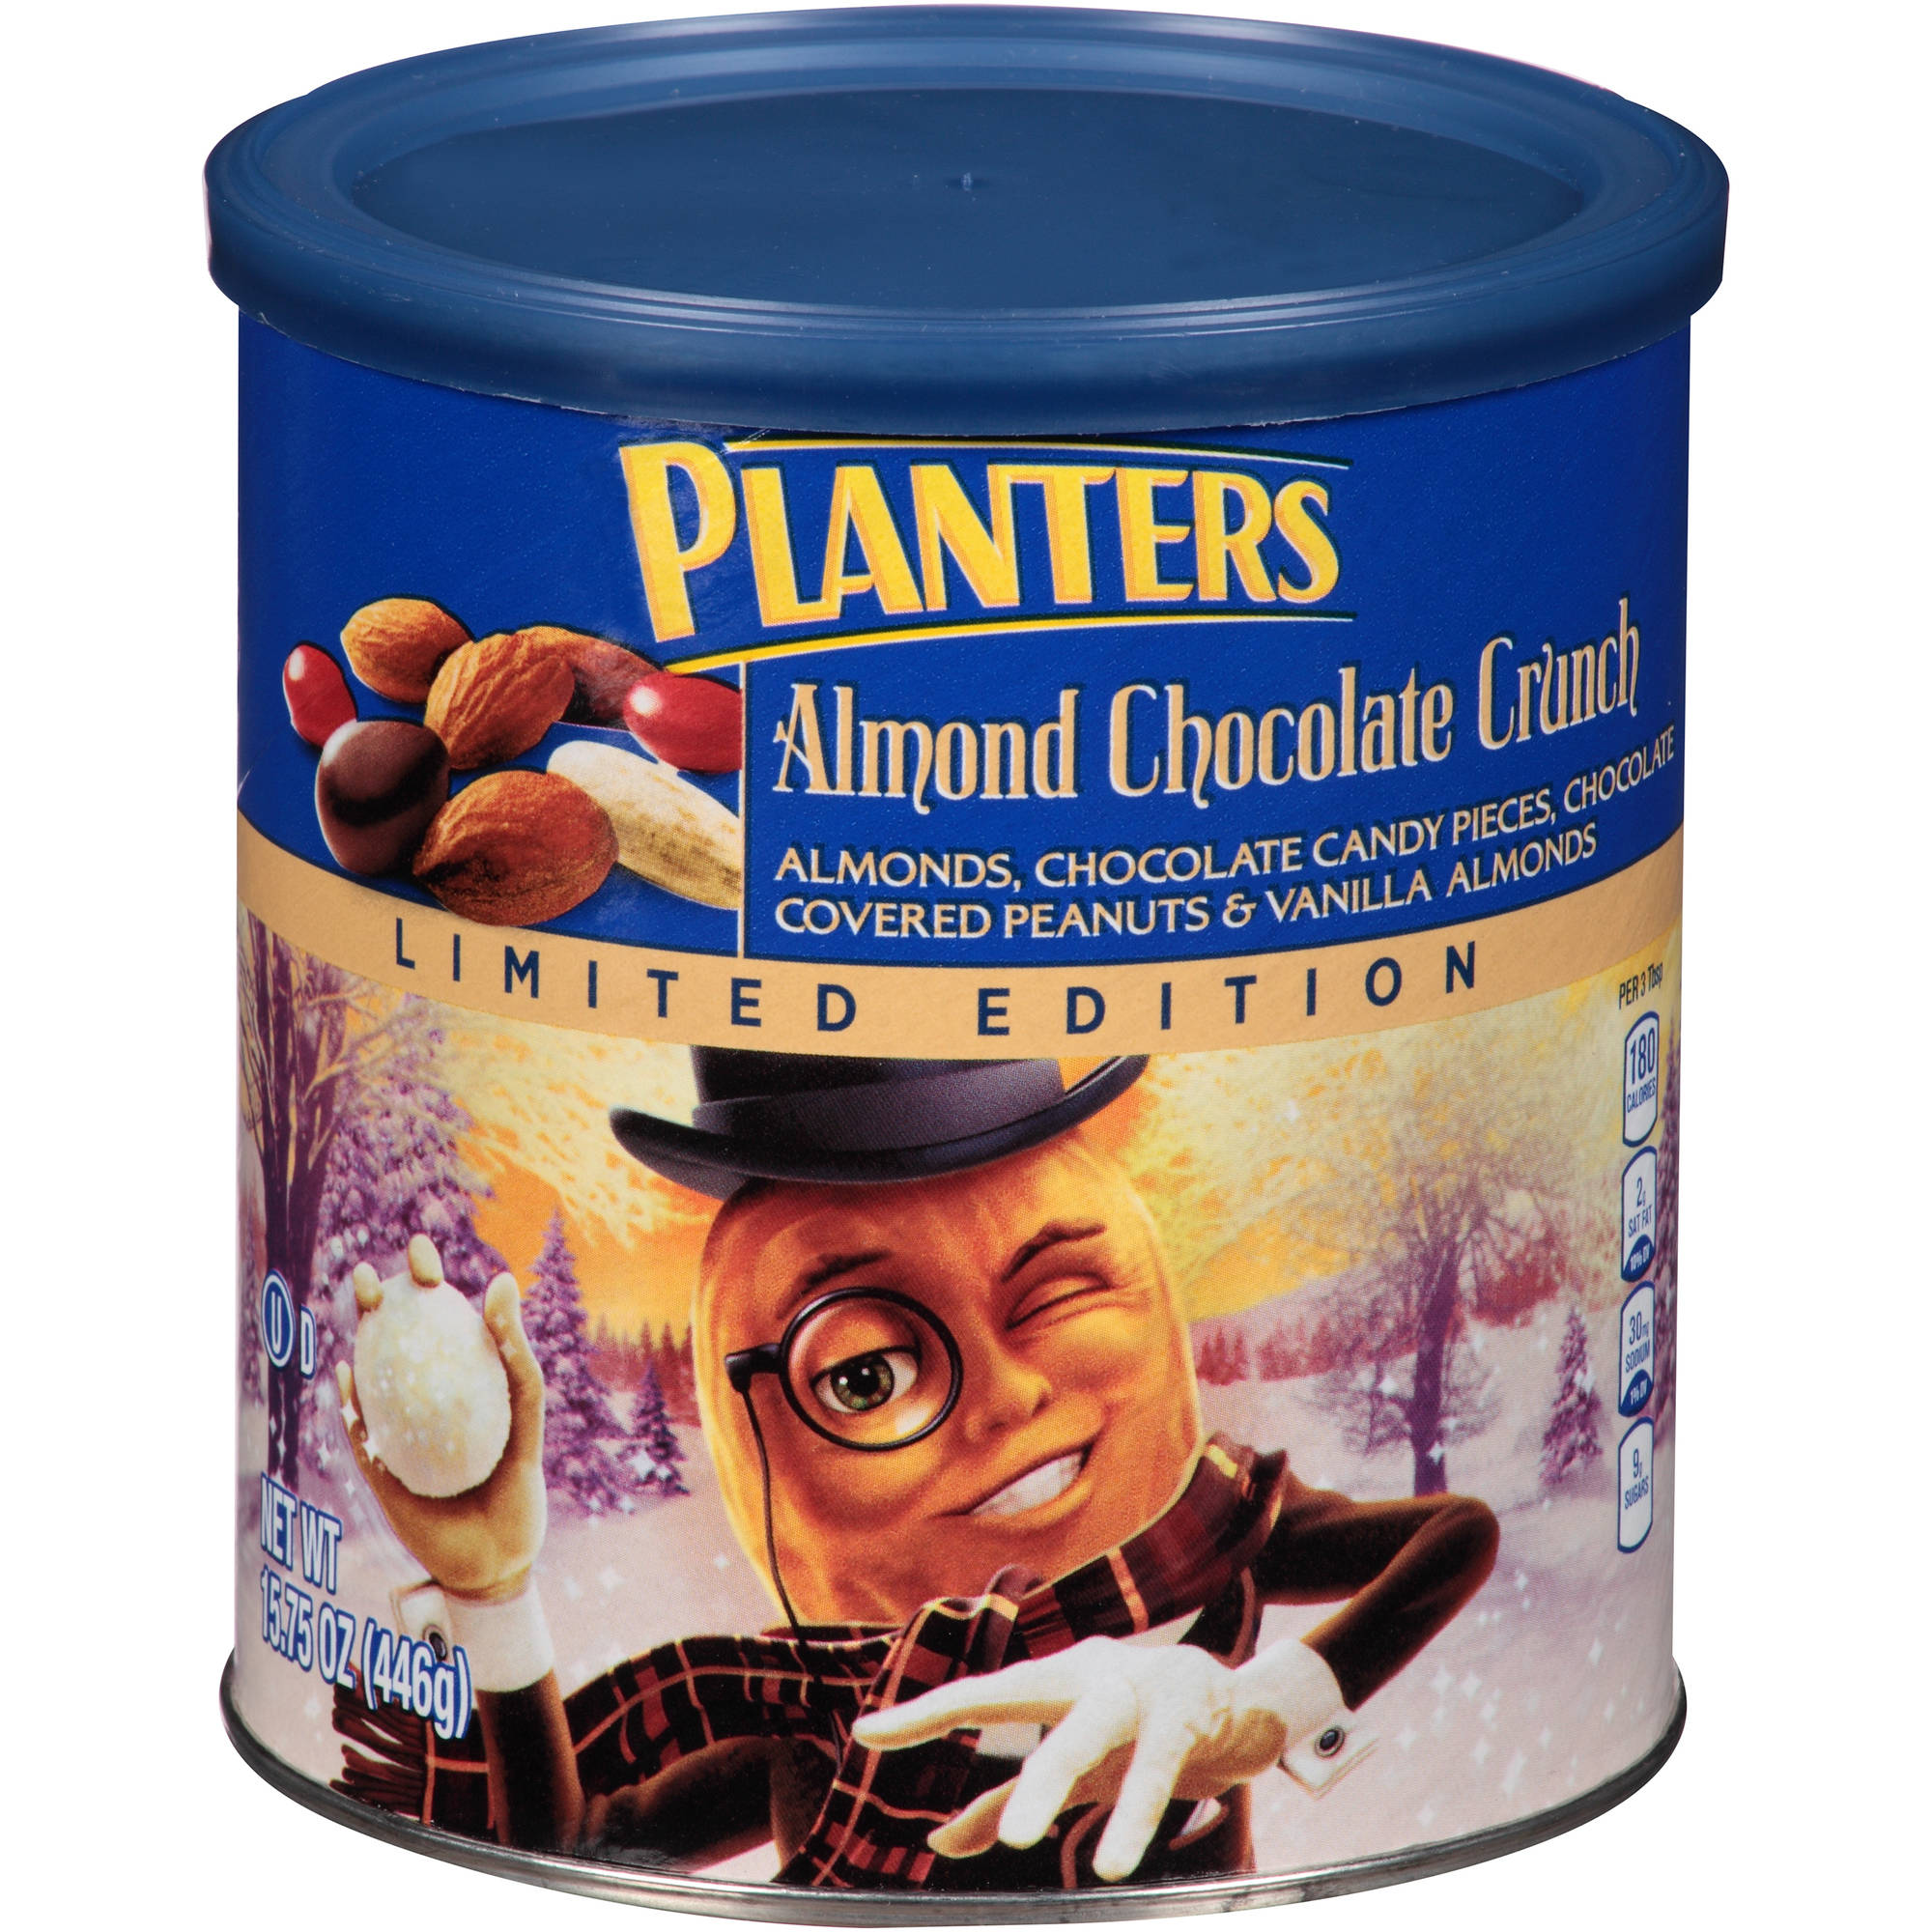 Planters Limited Edition Almond Chocolate Crunch, 15.75 oz